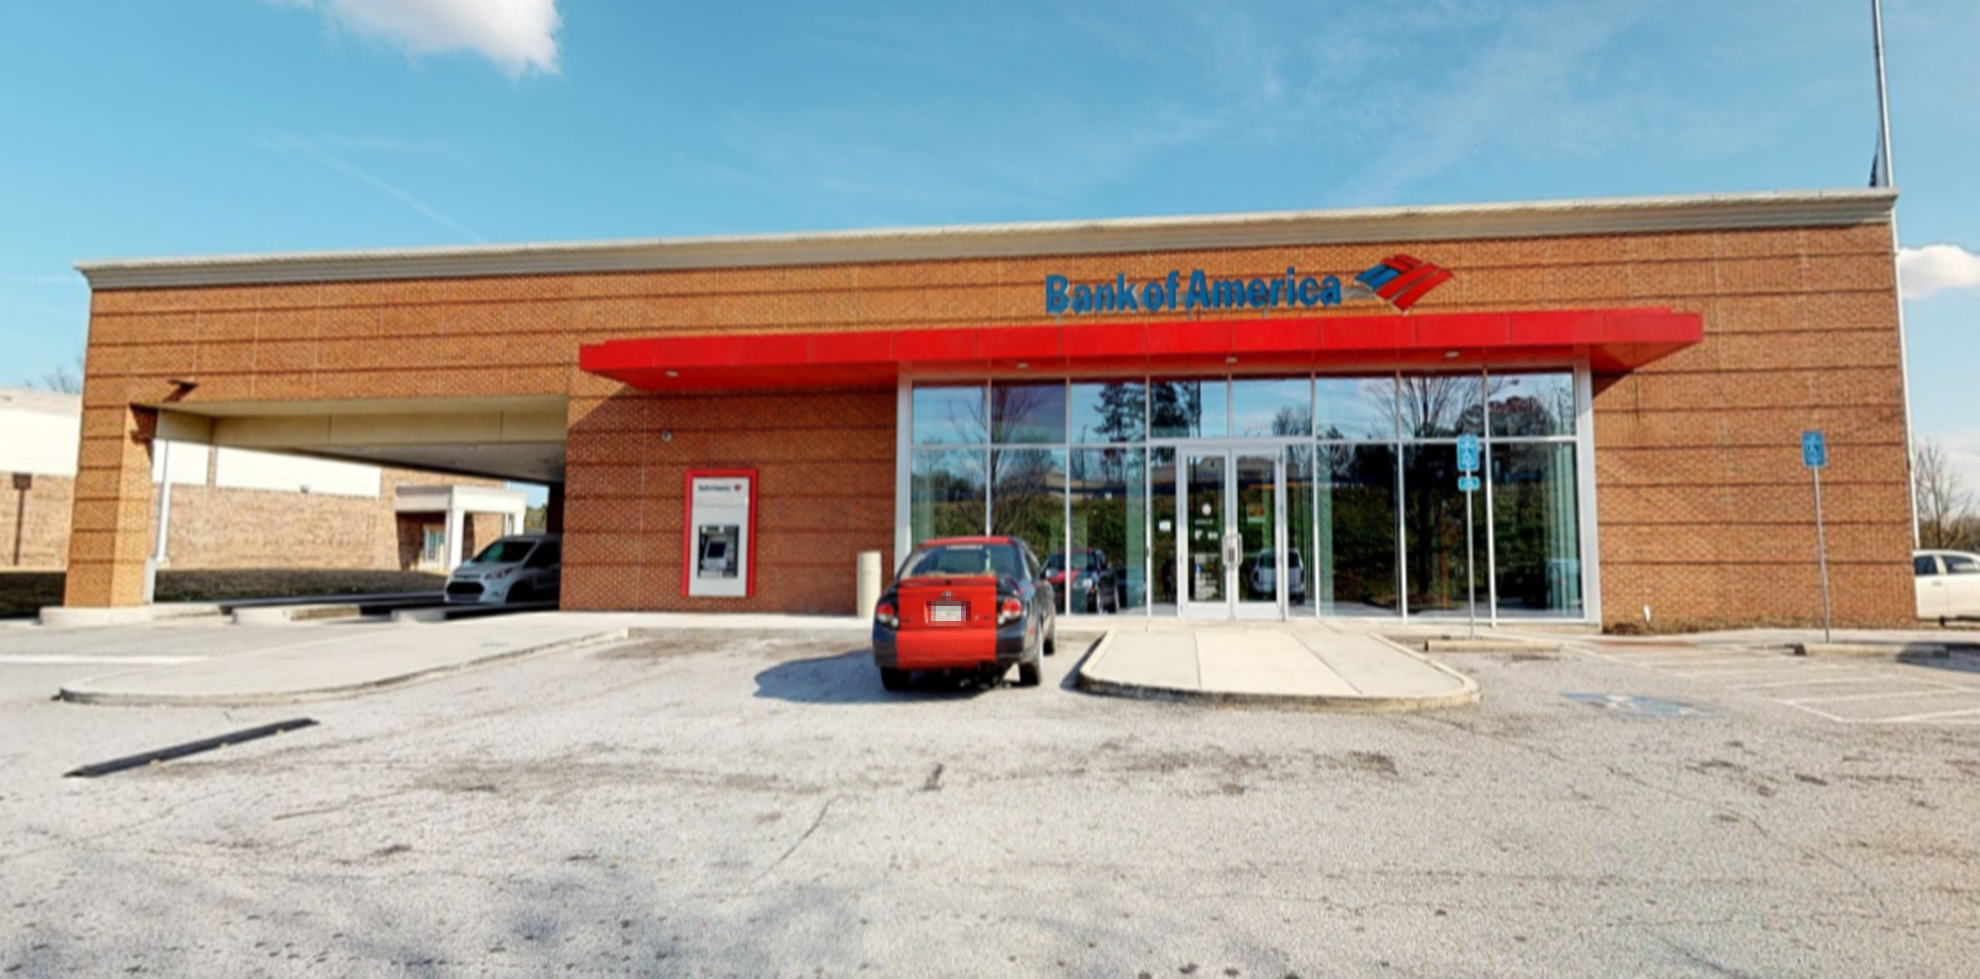 Bank of America financial center with drive-thru ATM | 3930 Lawrenceville Hwy NW, Lilburn, GA 30047